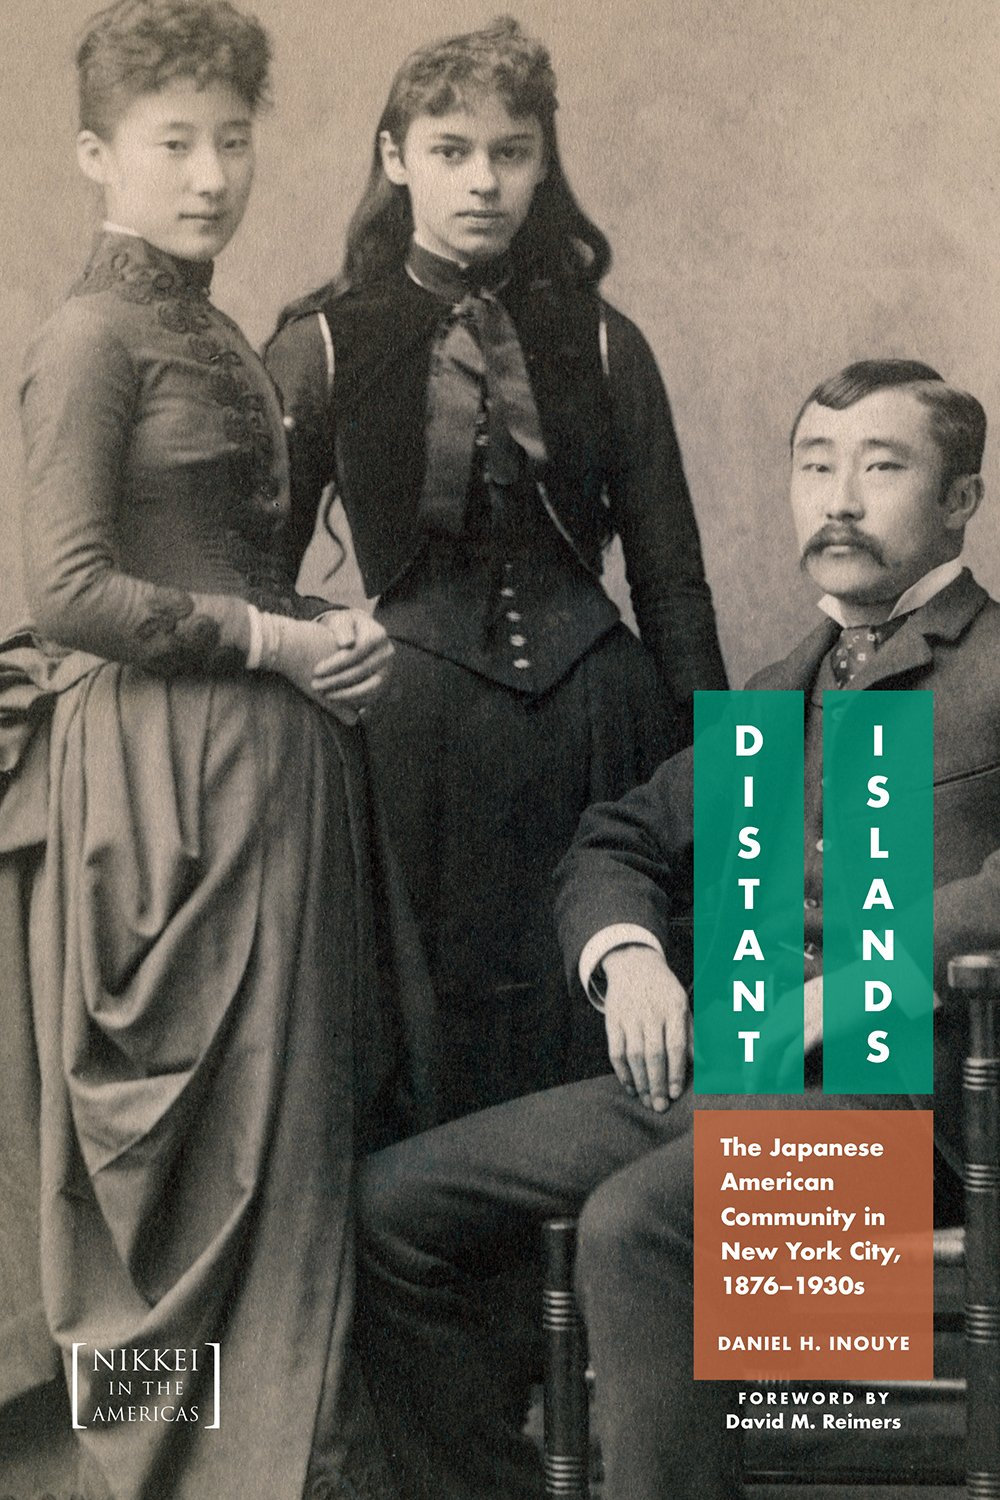 Distant Islands: The Japanese American Community in New York City, 1876-1930s  By Daniel H. Inouye University Press of Colorado, 2018 386 pages